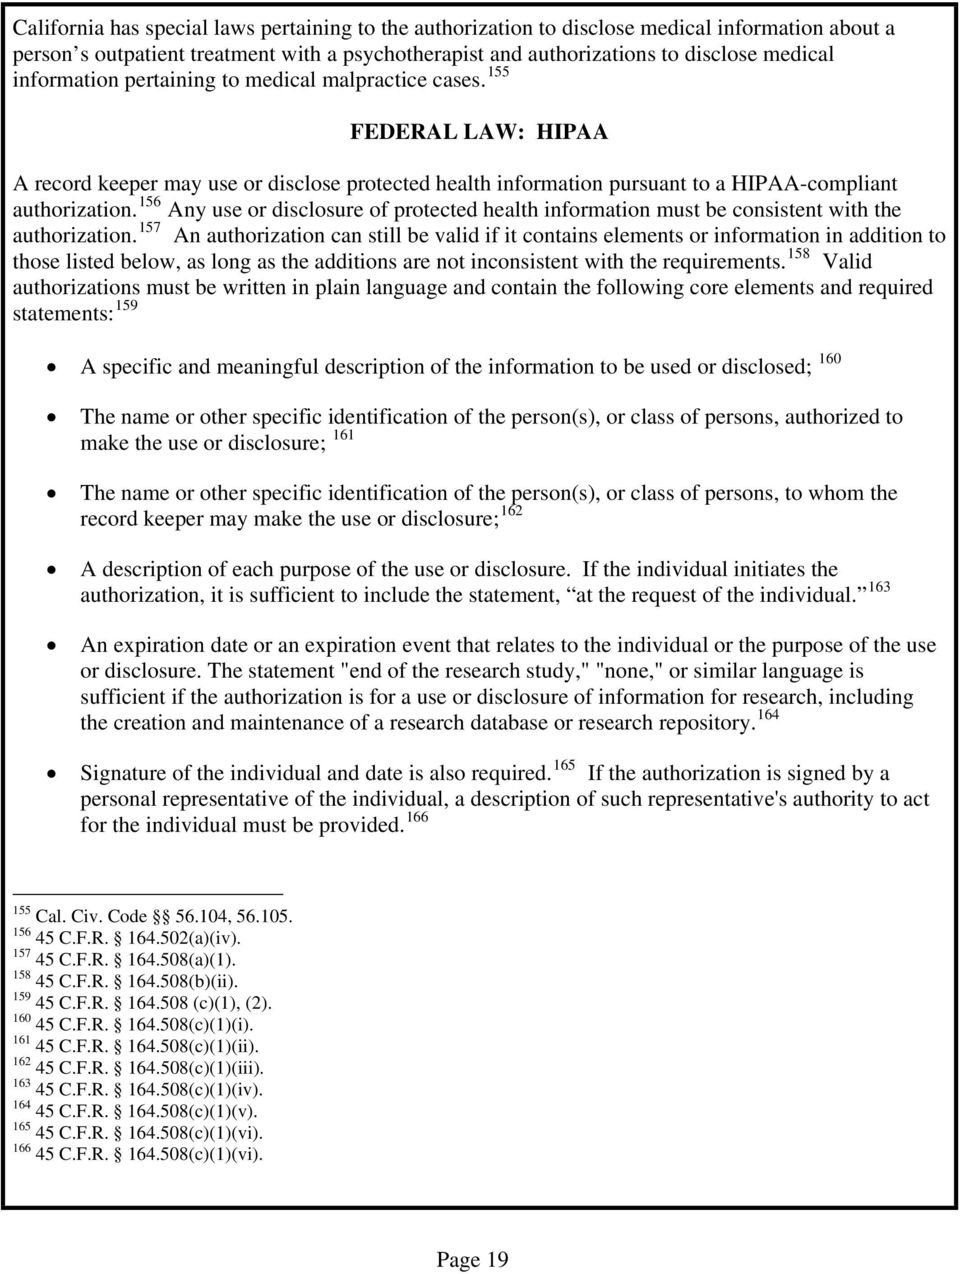 156 Any use or disclosure of protected health information must be consistent with the authorization.